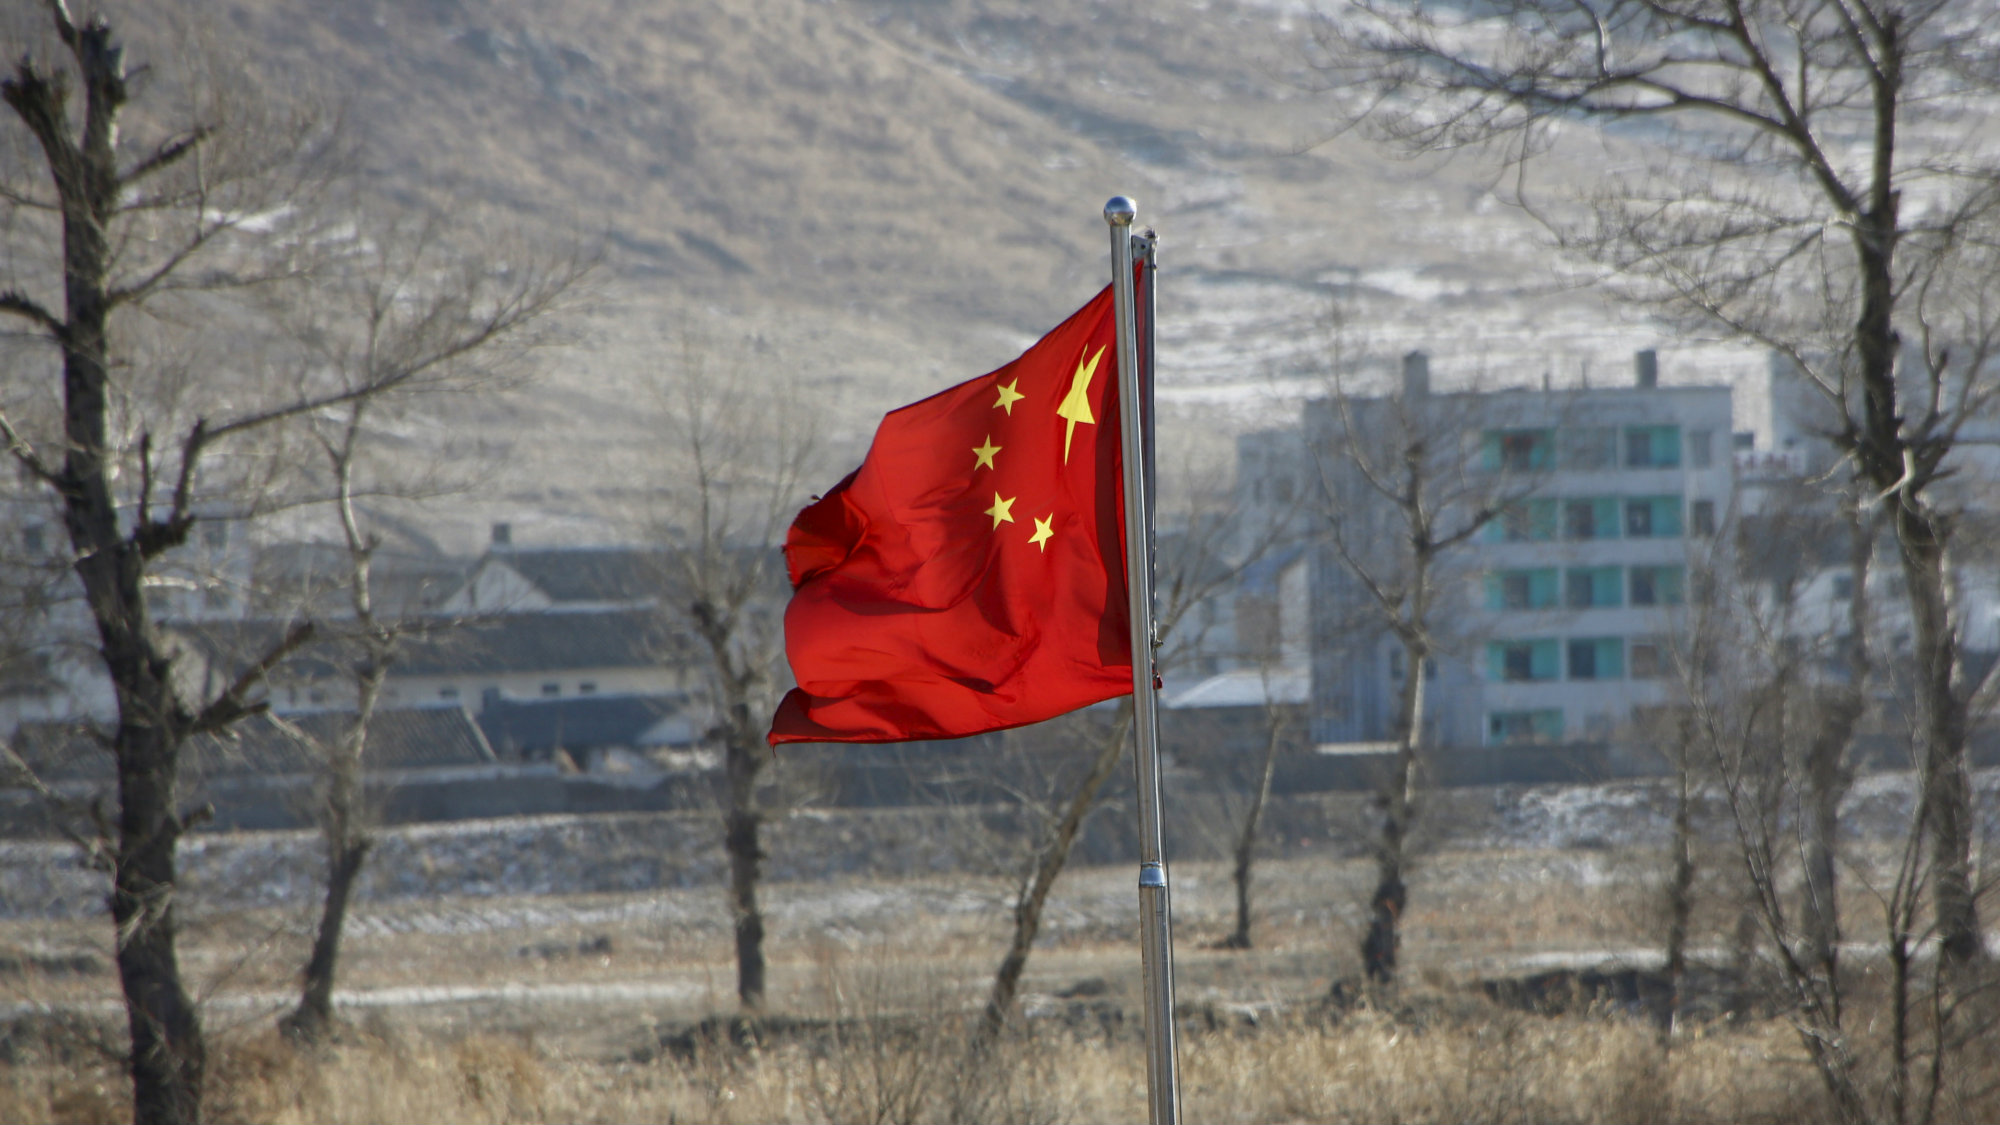 DATE IMPORTED:January 07, 2016China's national flag flutters on the Chinese side of the banks of the Tumen river, as a North Korean village is seen behind, in Tumen, China, January 7, 2016. REUTERS/Kim Kyung-Hoon